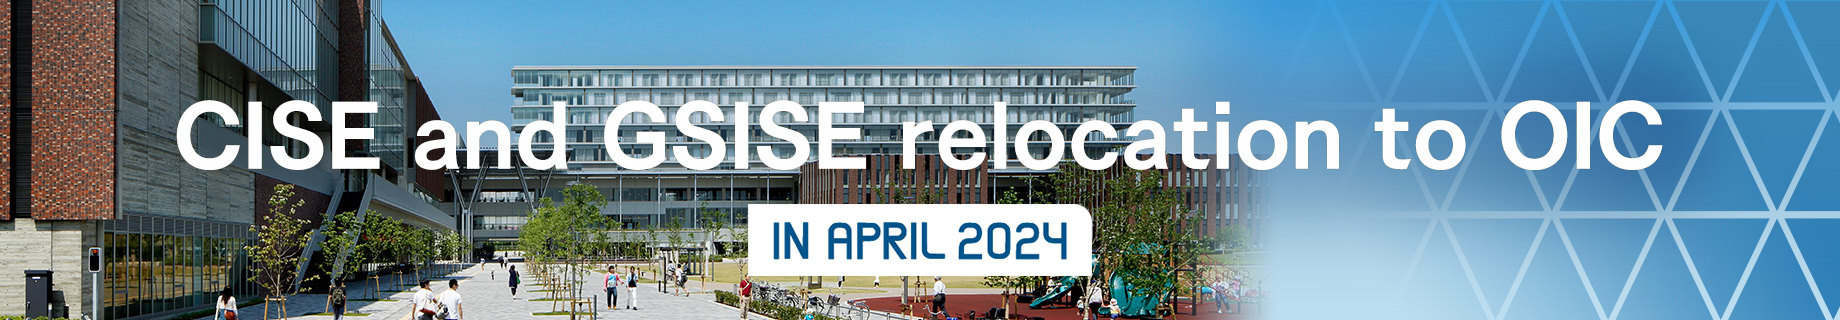 CISE and GSISE relocation to OIC in April 2024